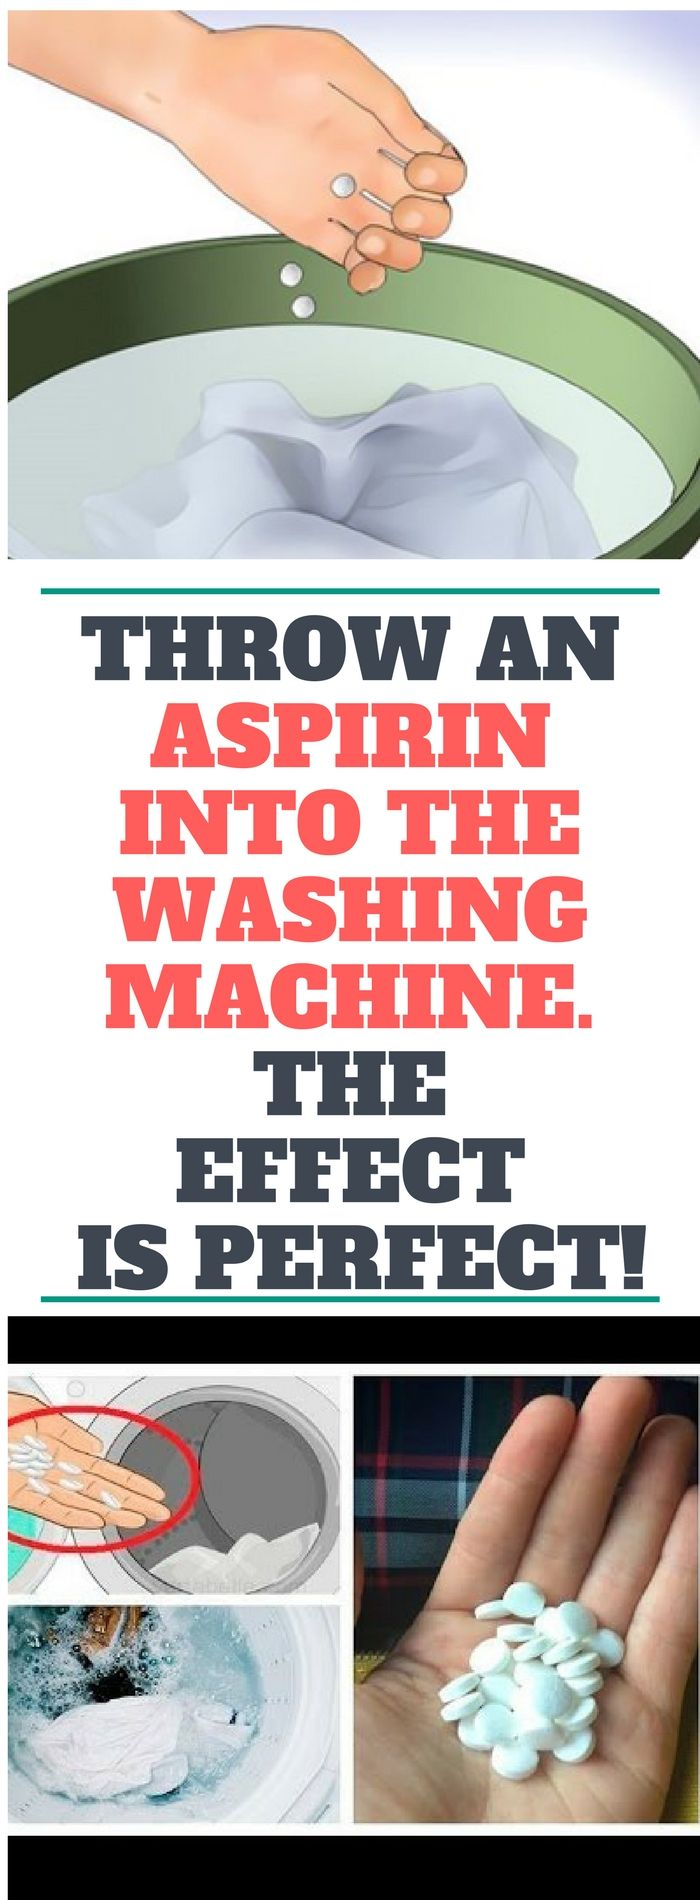 Throw An Aspirin Into The Washing Machine. The Effect Is Perfect..!!!